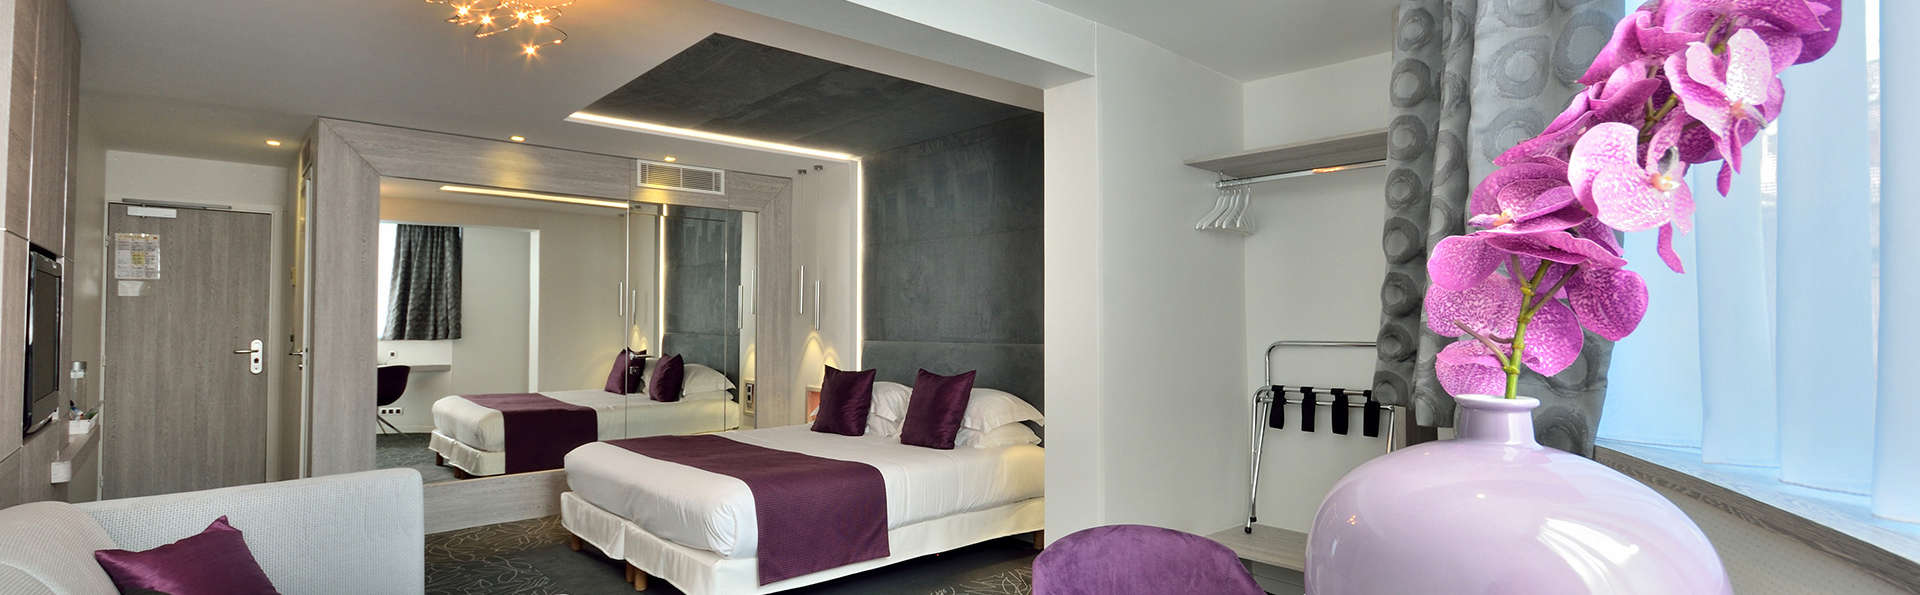 C zanne h tel spa 4 cannes france for Reservation hotel paca